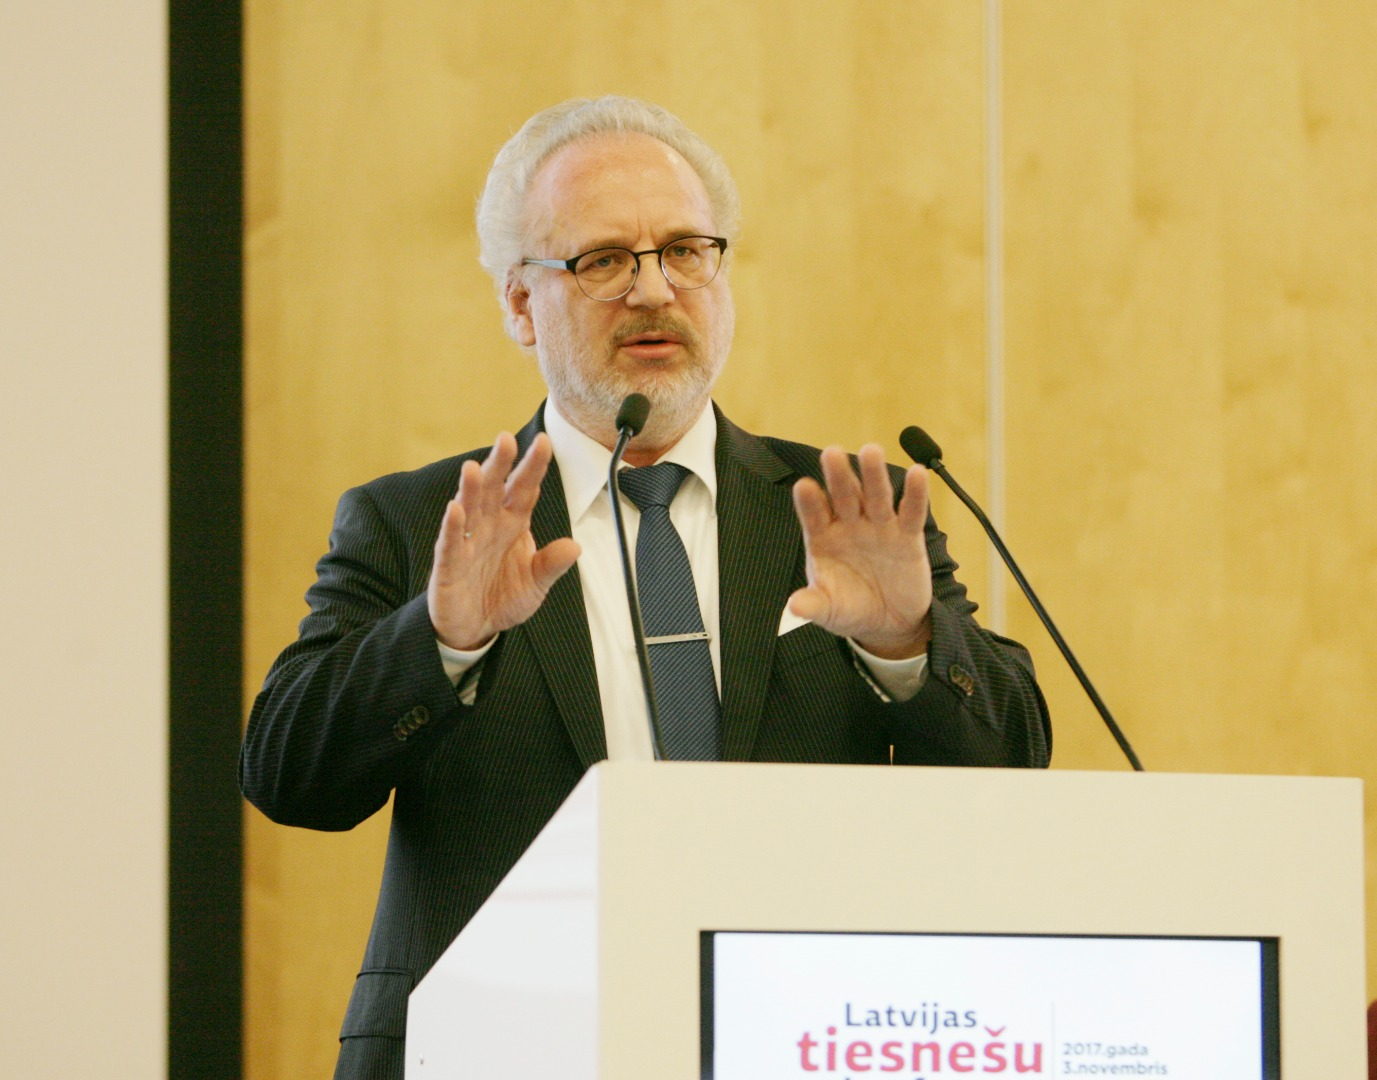 03.11.2017. Egils Levits, Judge of the Court of Justice of the European Union, speaks at the Latvian Judges' Conference